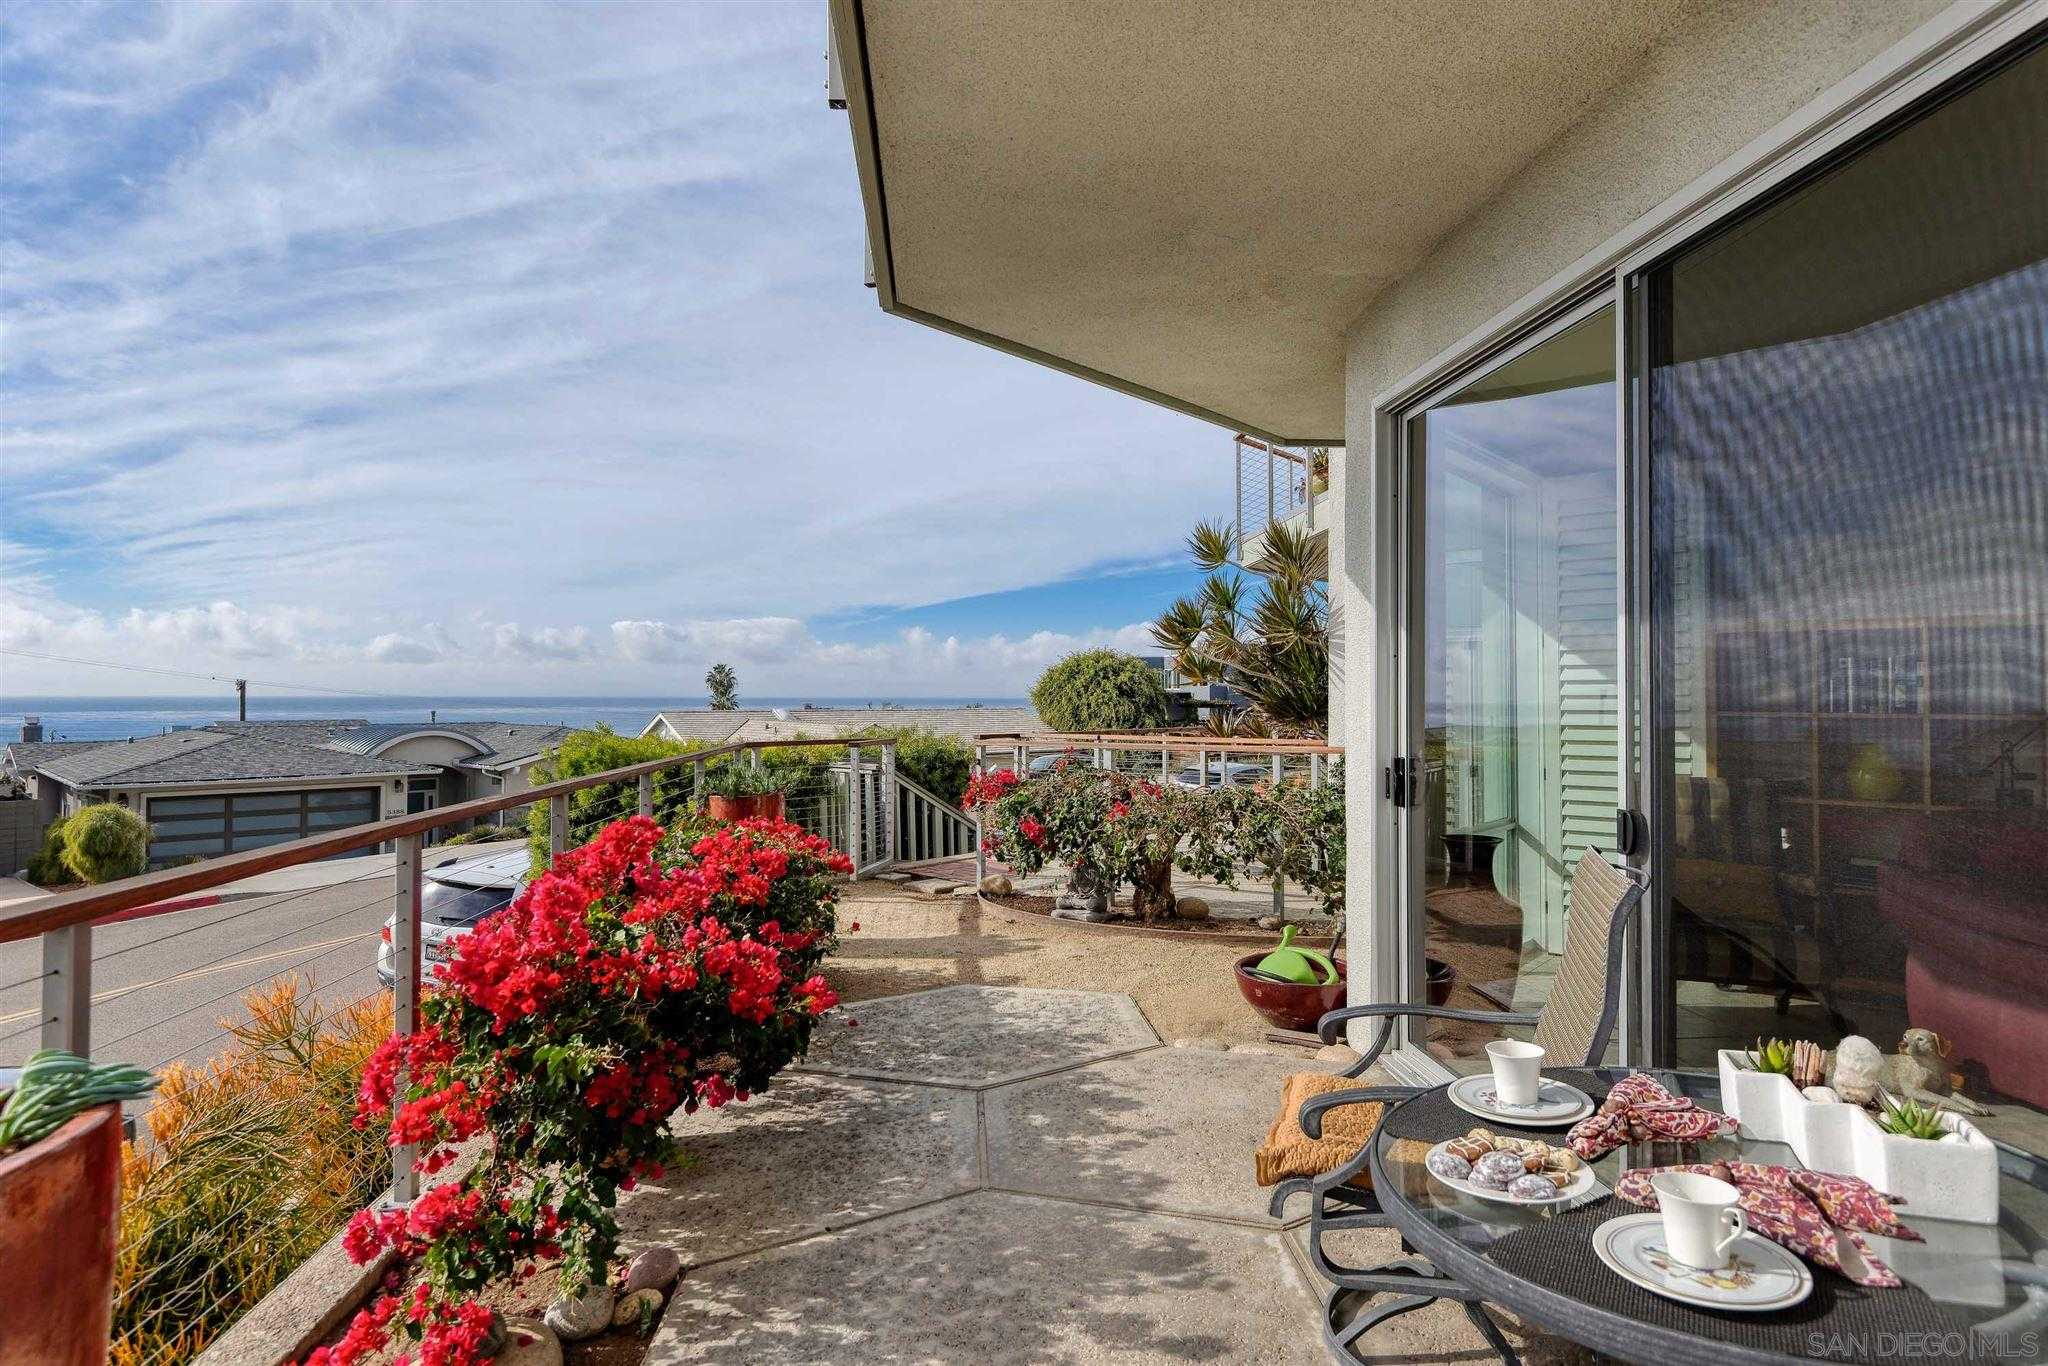 $1,195,000 - 2Br/2Ba -  for Sale in Bird Rock, La Jolla